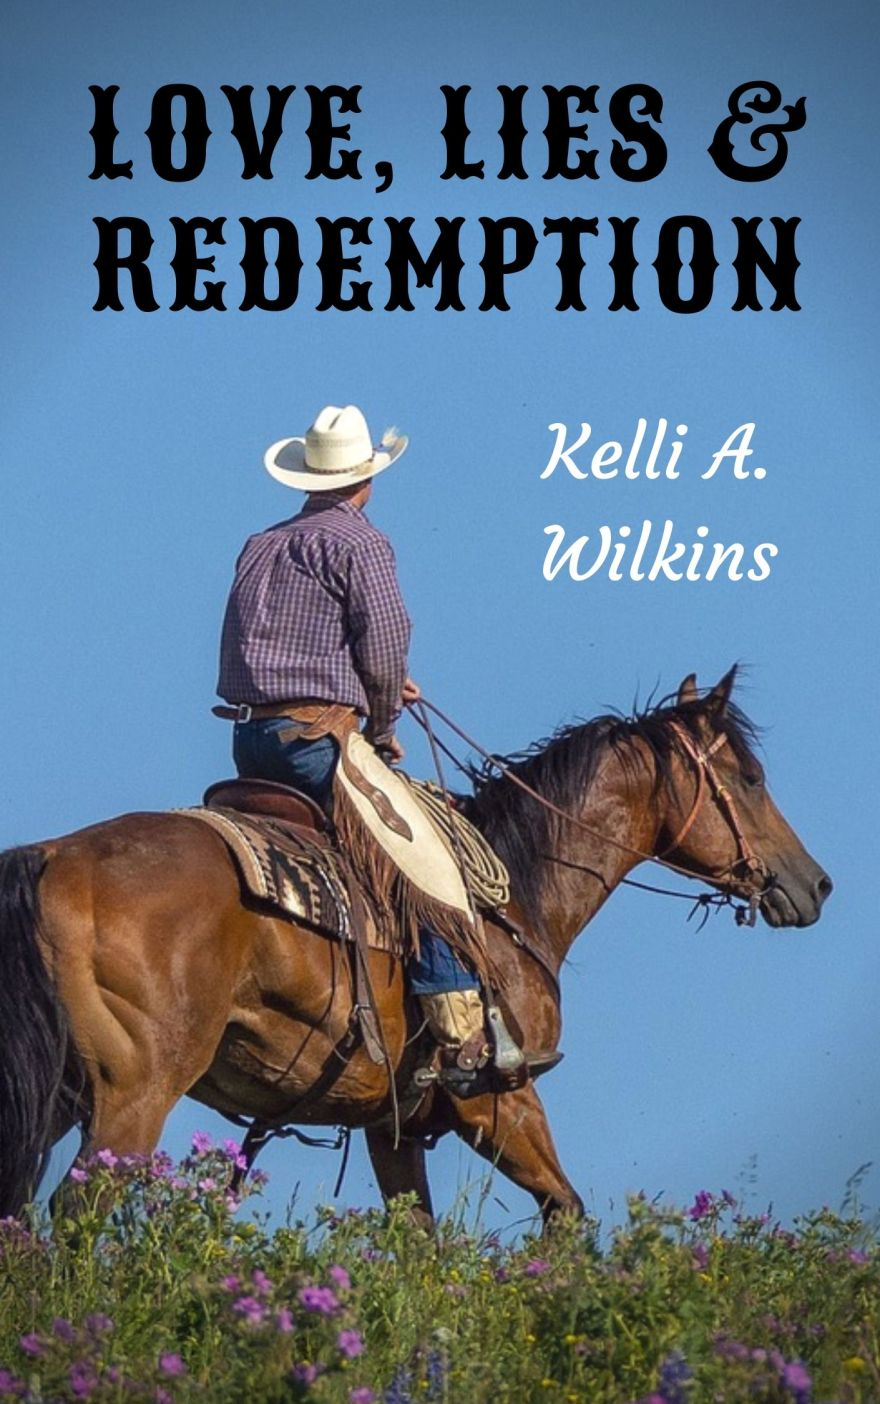 LOVE LIES REDEMPTION by Kelli Wilkins